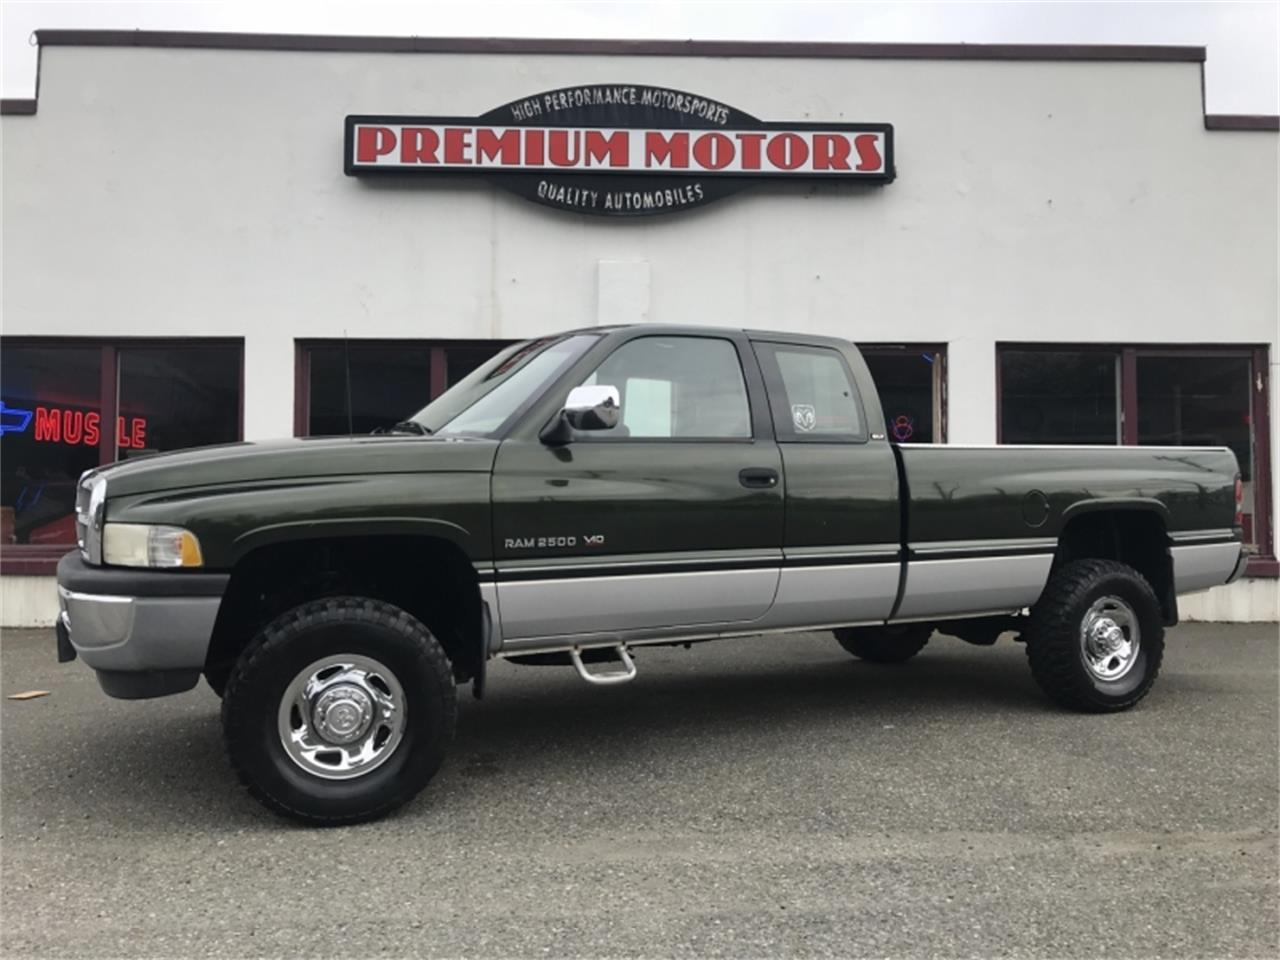 For Sale: 1996 Dodge Ram in Tocoma, Washington